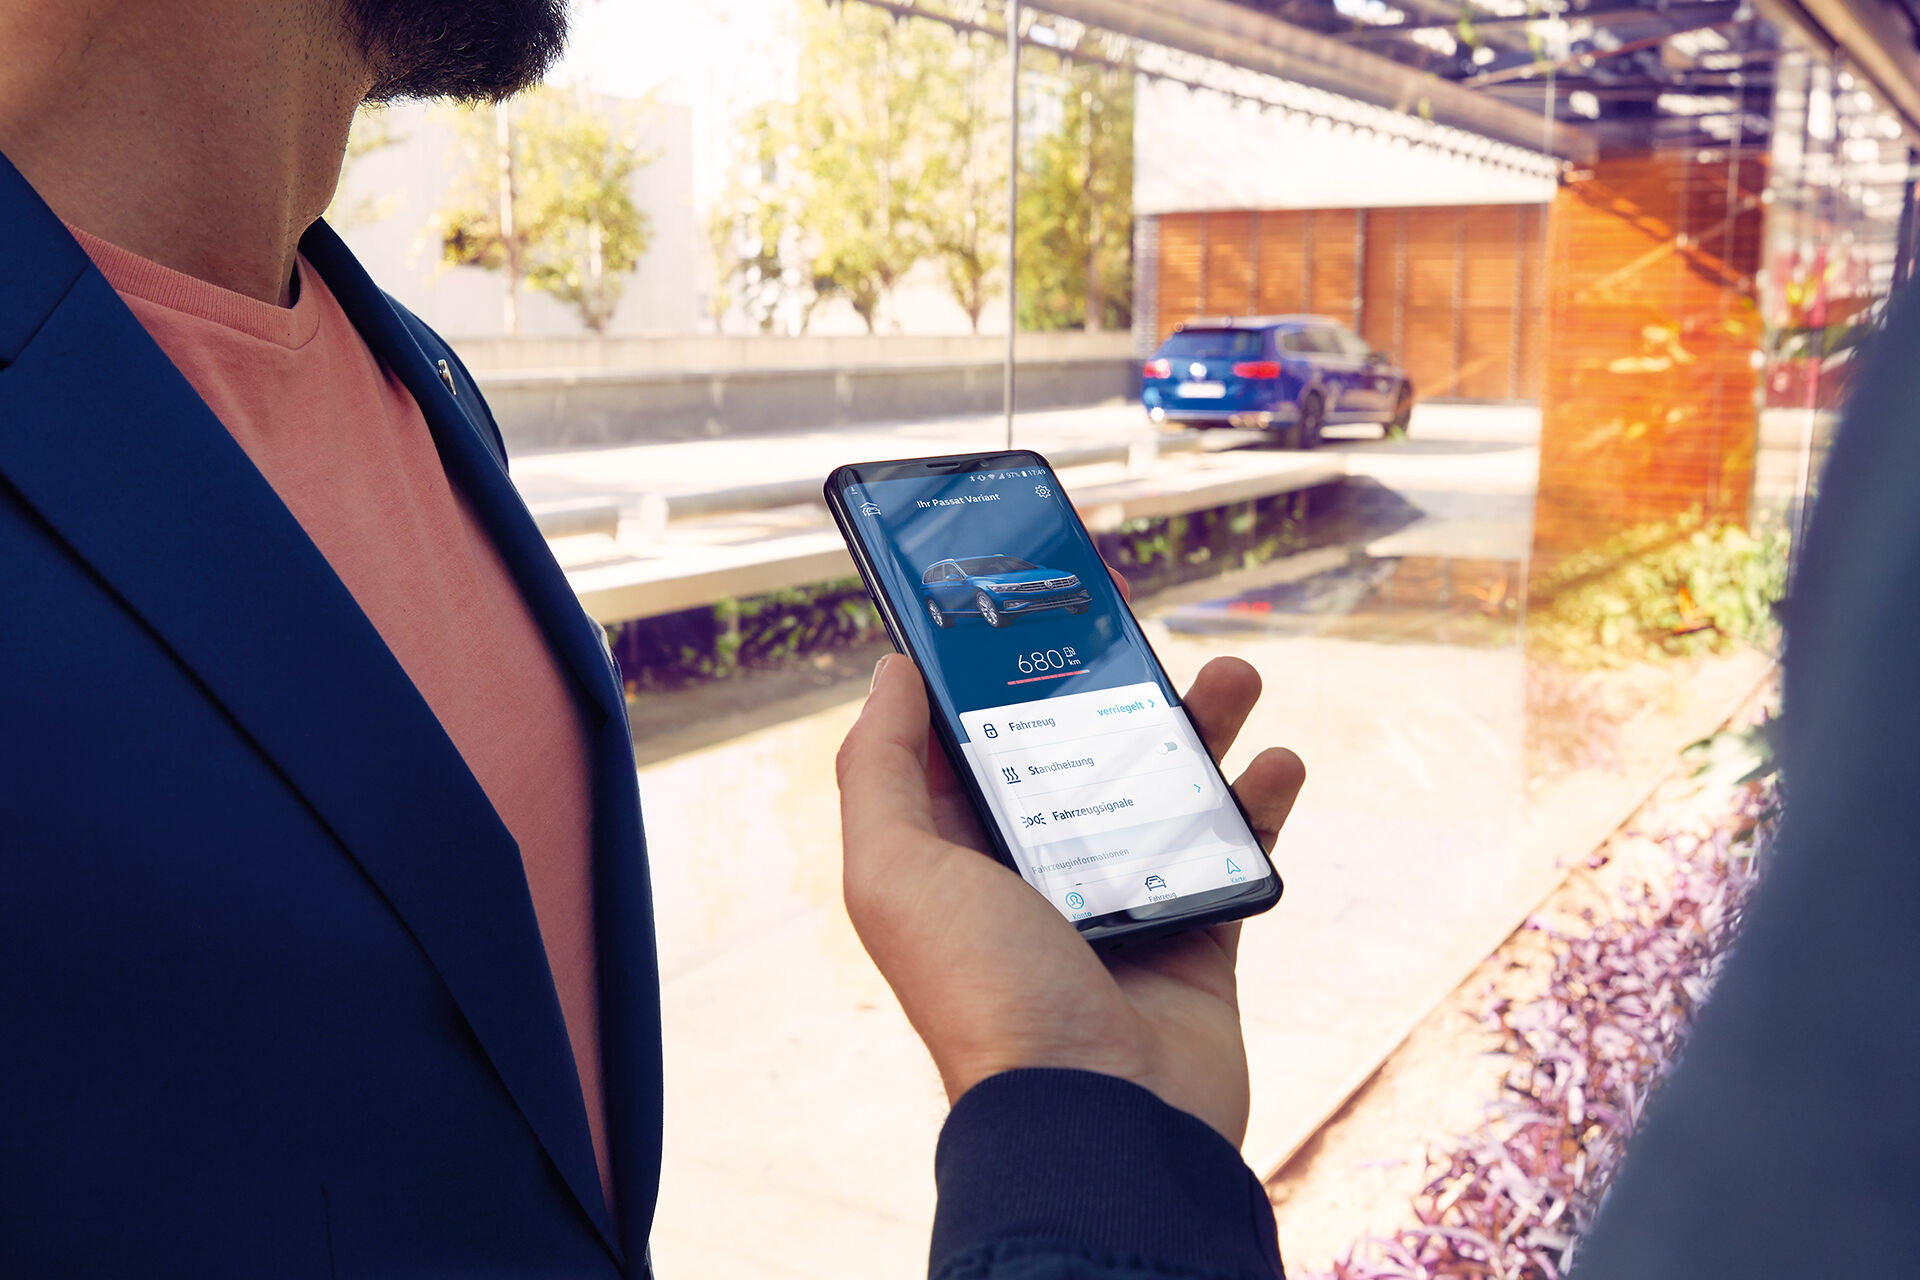 We Connect - Türen und Licht per Smartphone checken